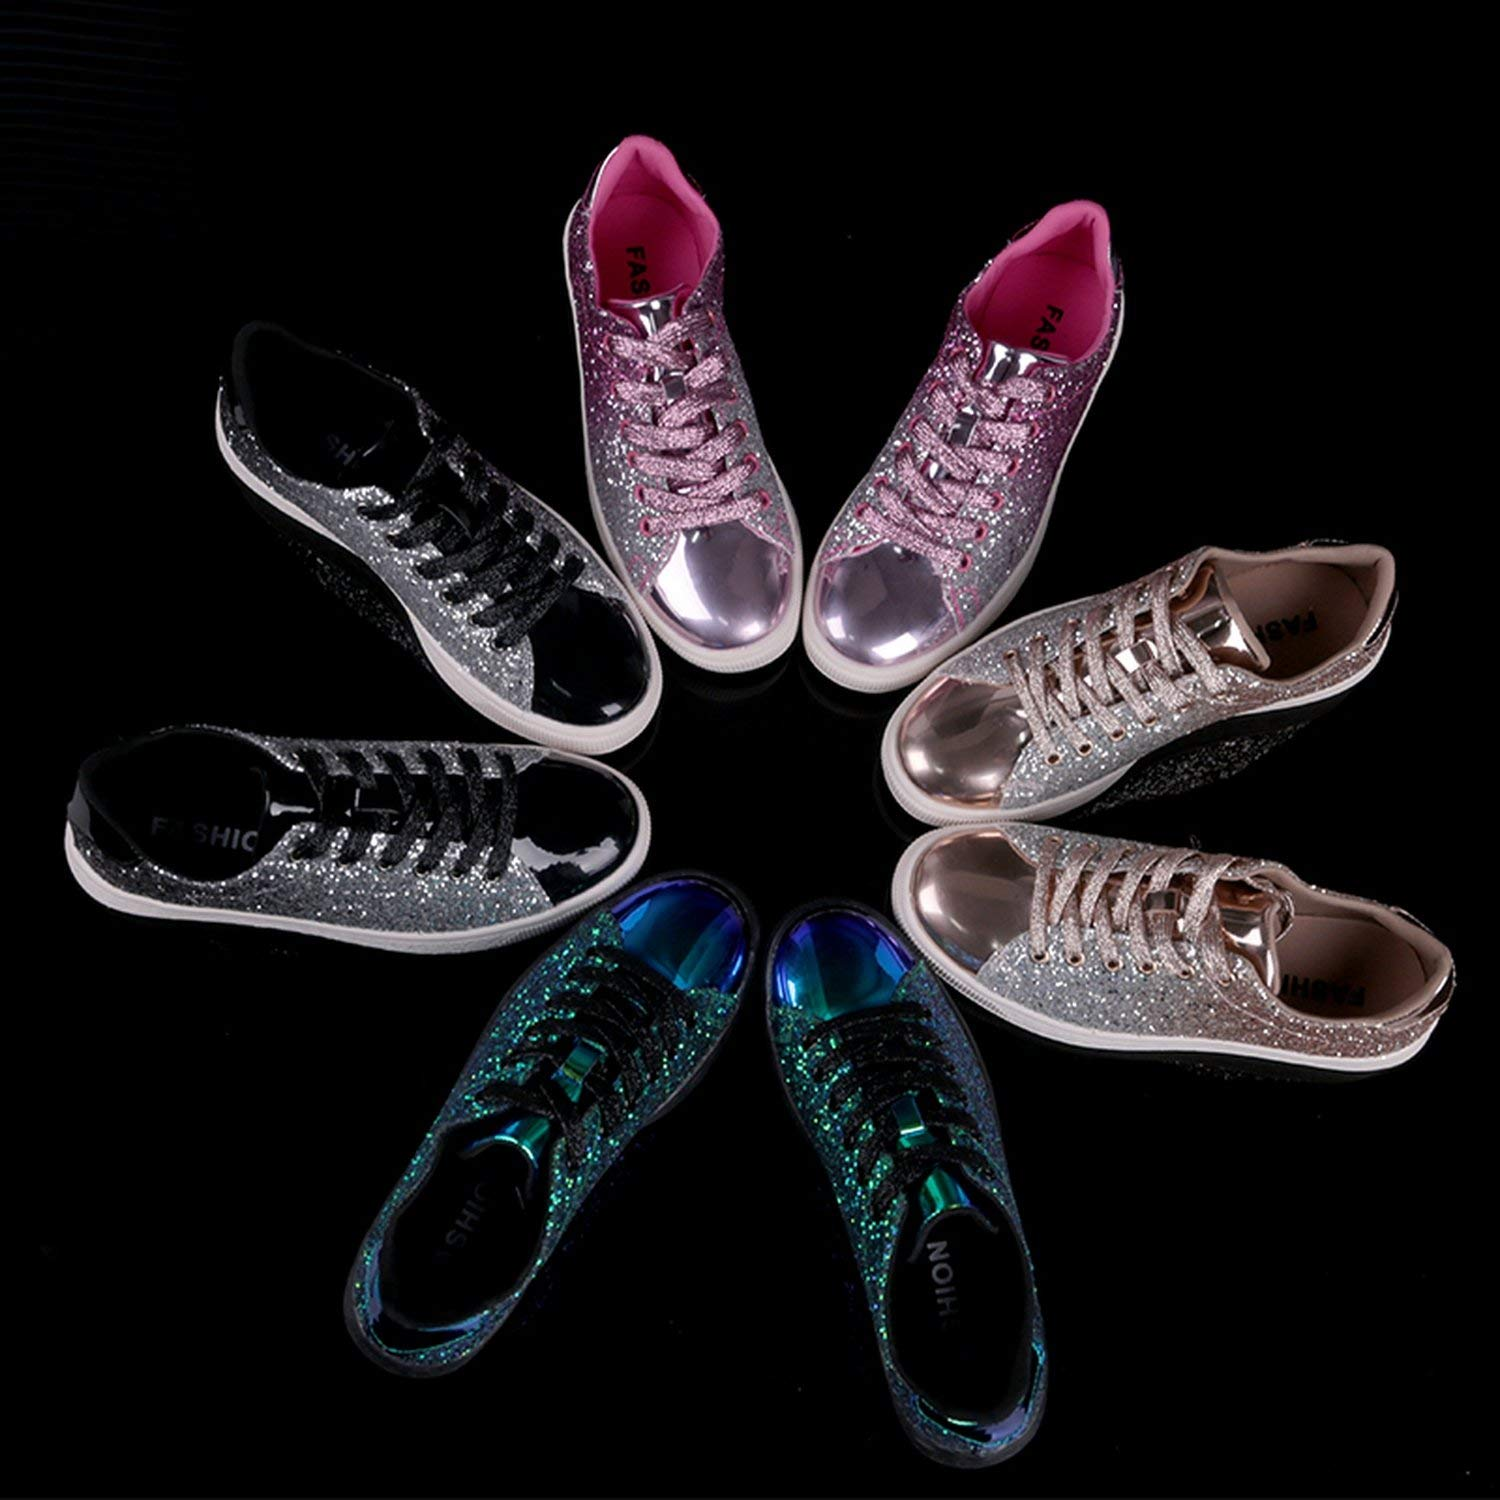 Womens Fashion Casual Rock Glitter Spakling Sneakers Womens Encrusted Lace Up Shoes White Sole Fashion Street Sneakers Shiny